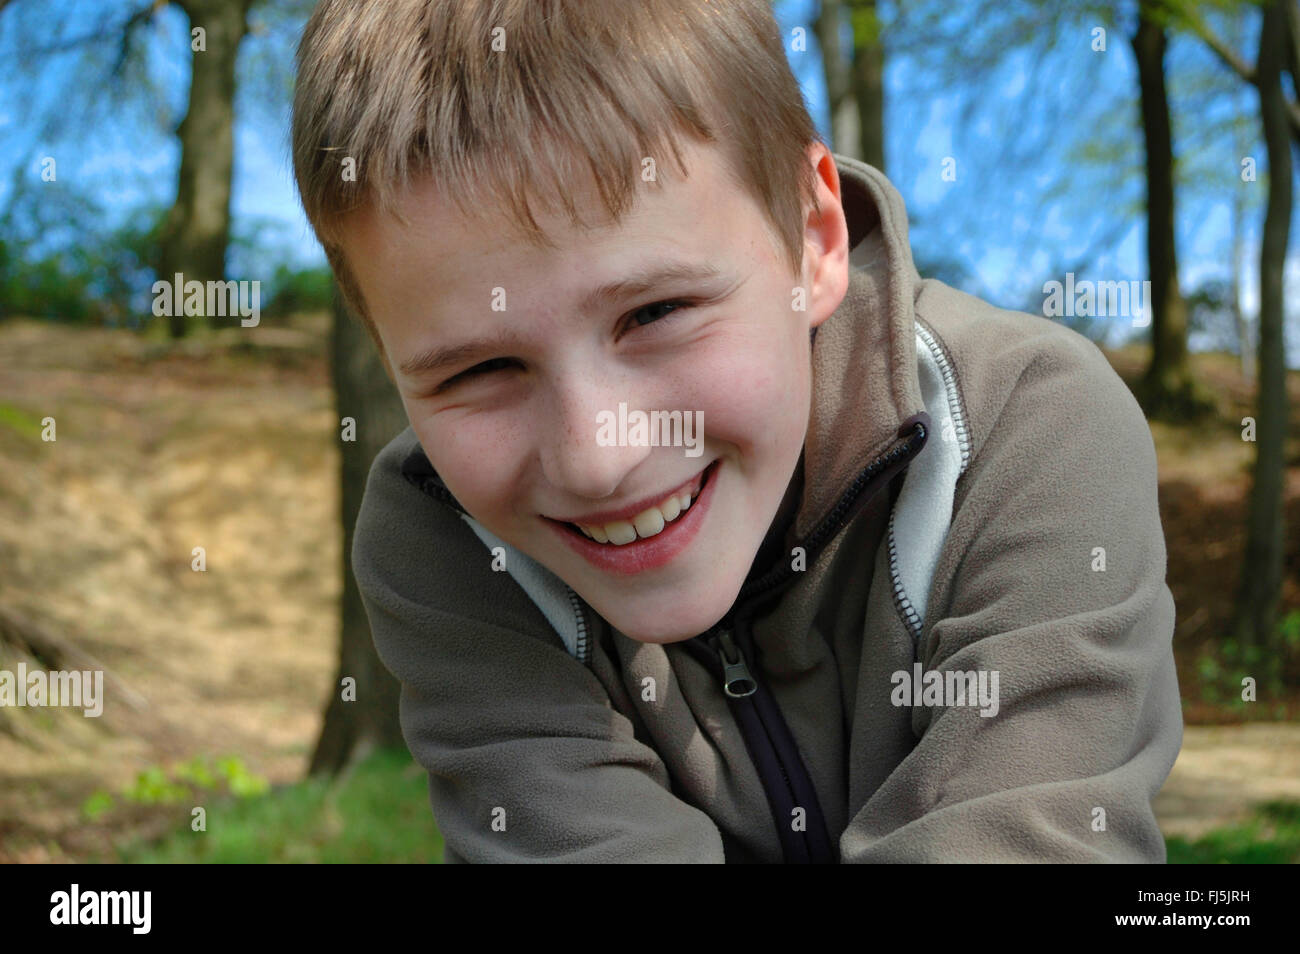 jolly boy in a forest, portrait of a child, Germany Stock Photo